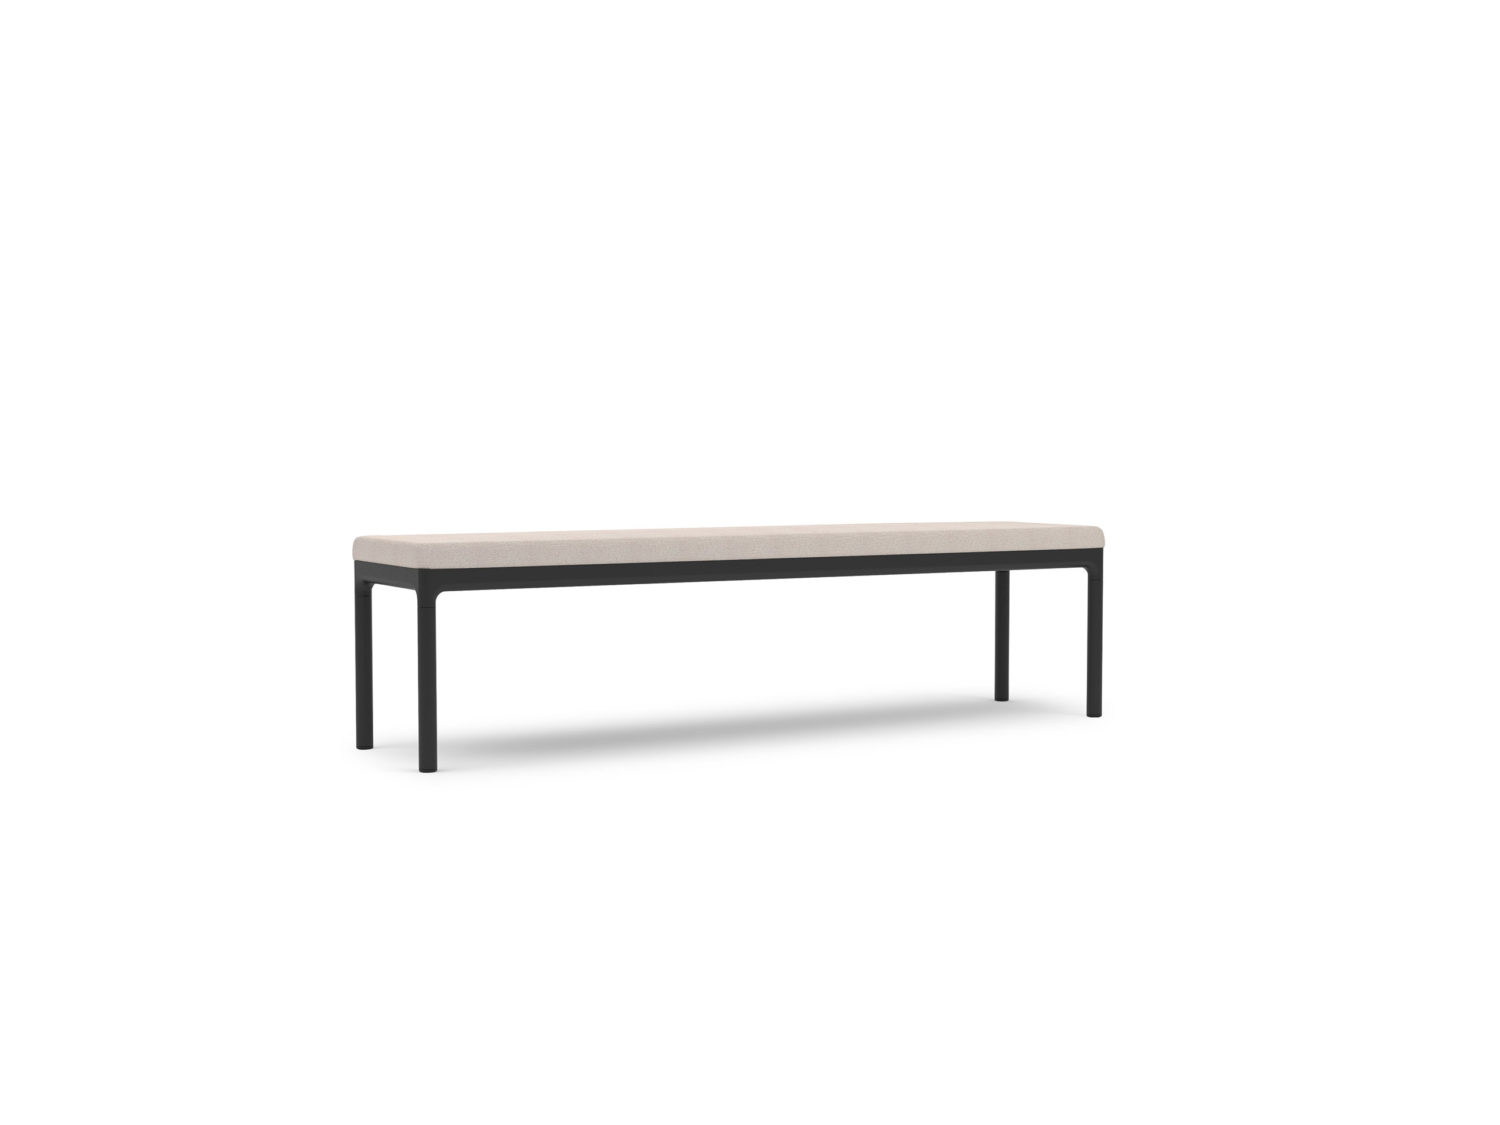 Pearsonlloyd Edge Bench 1